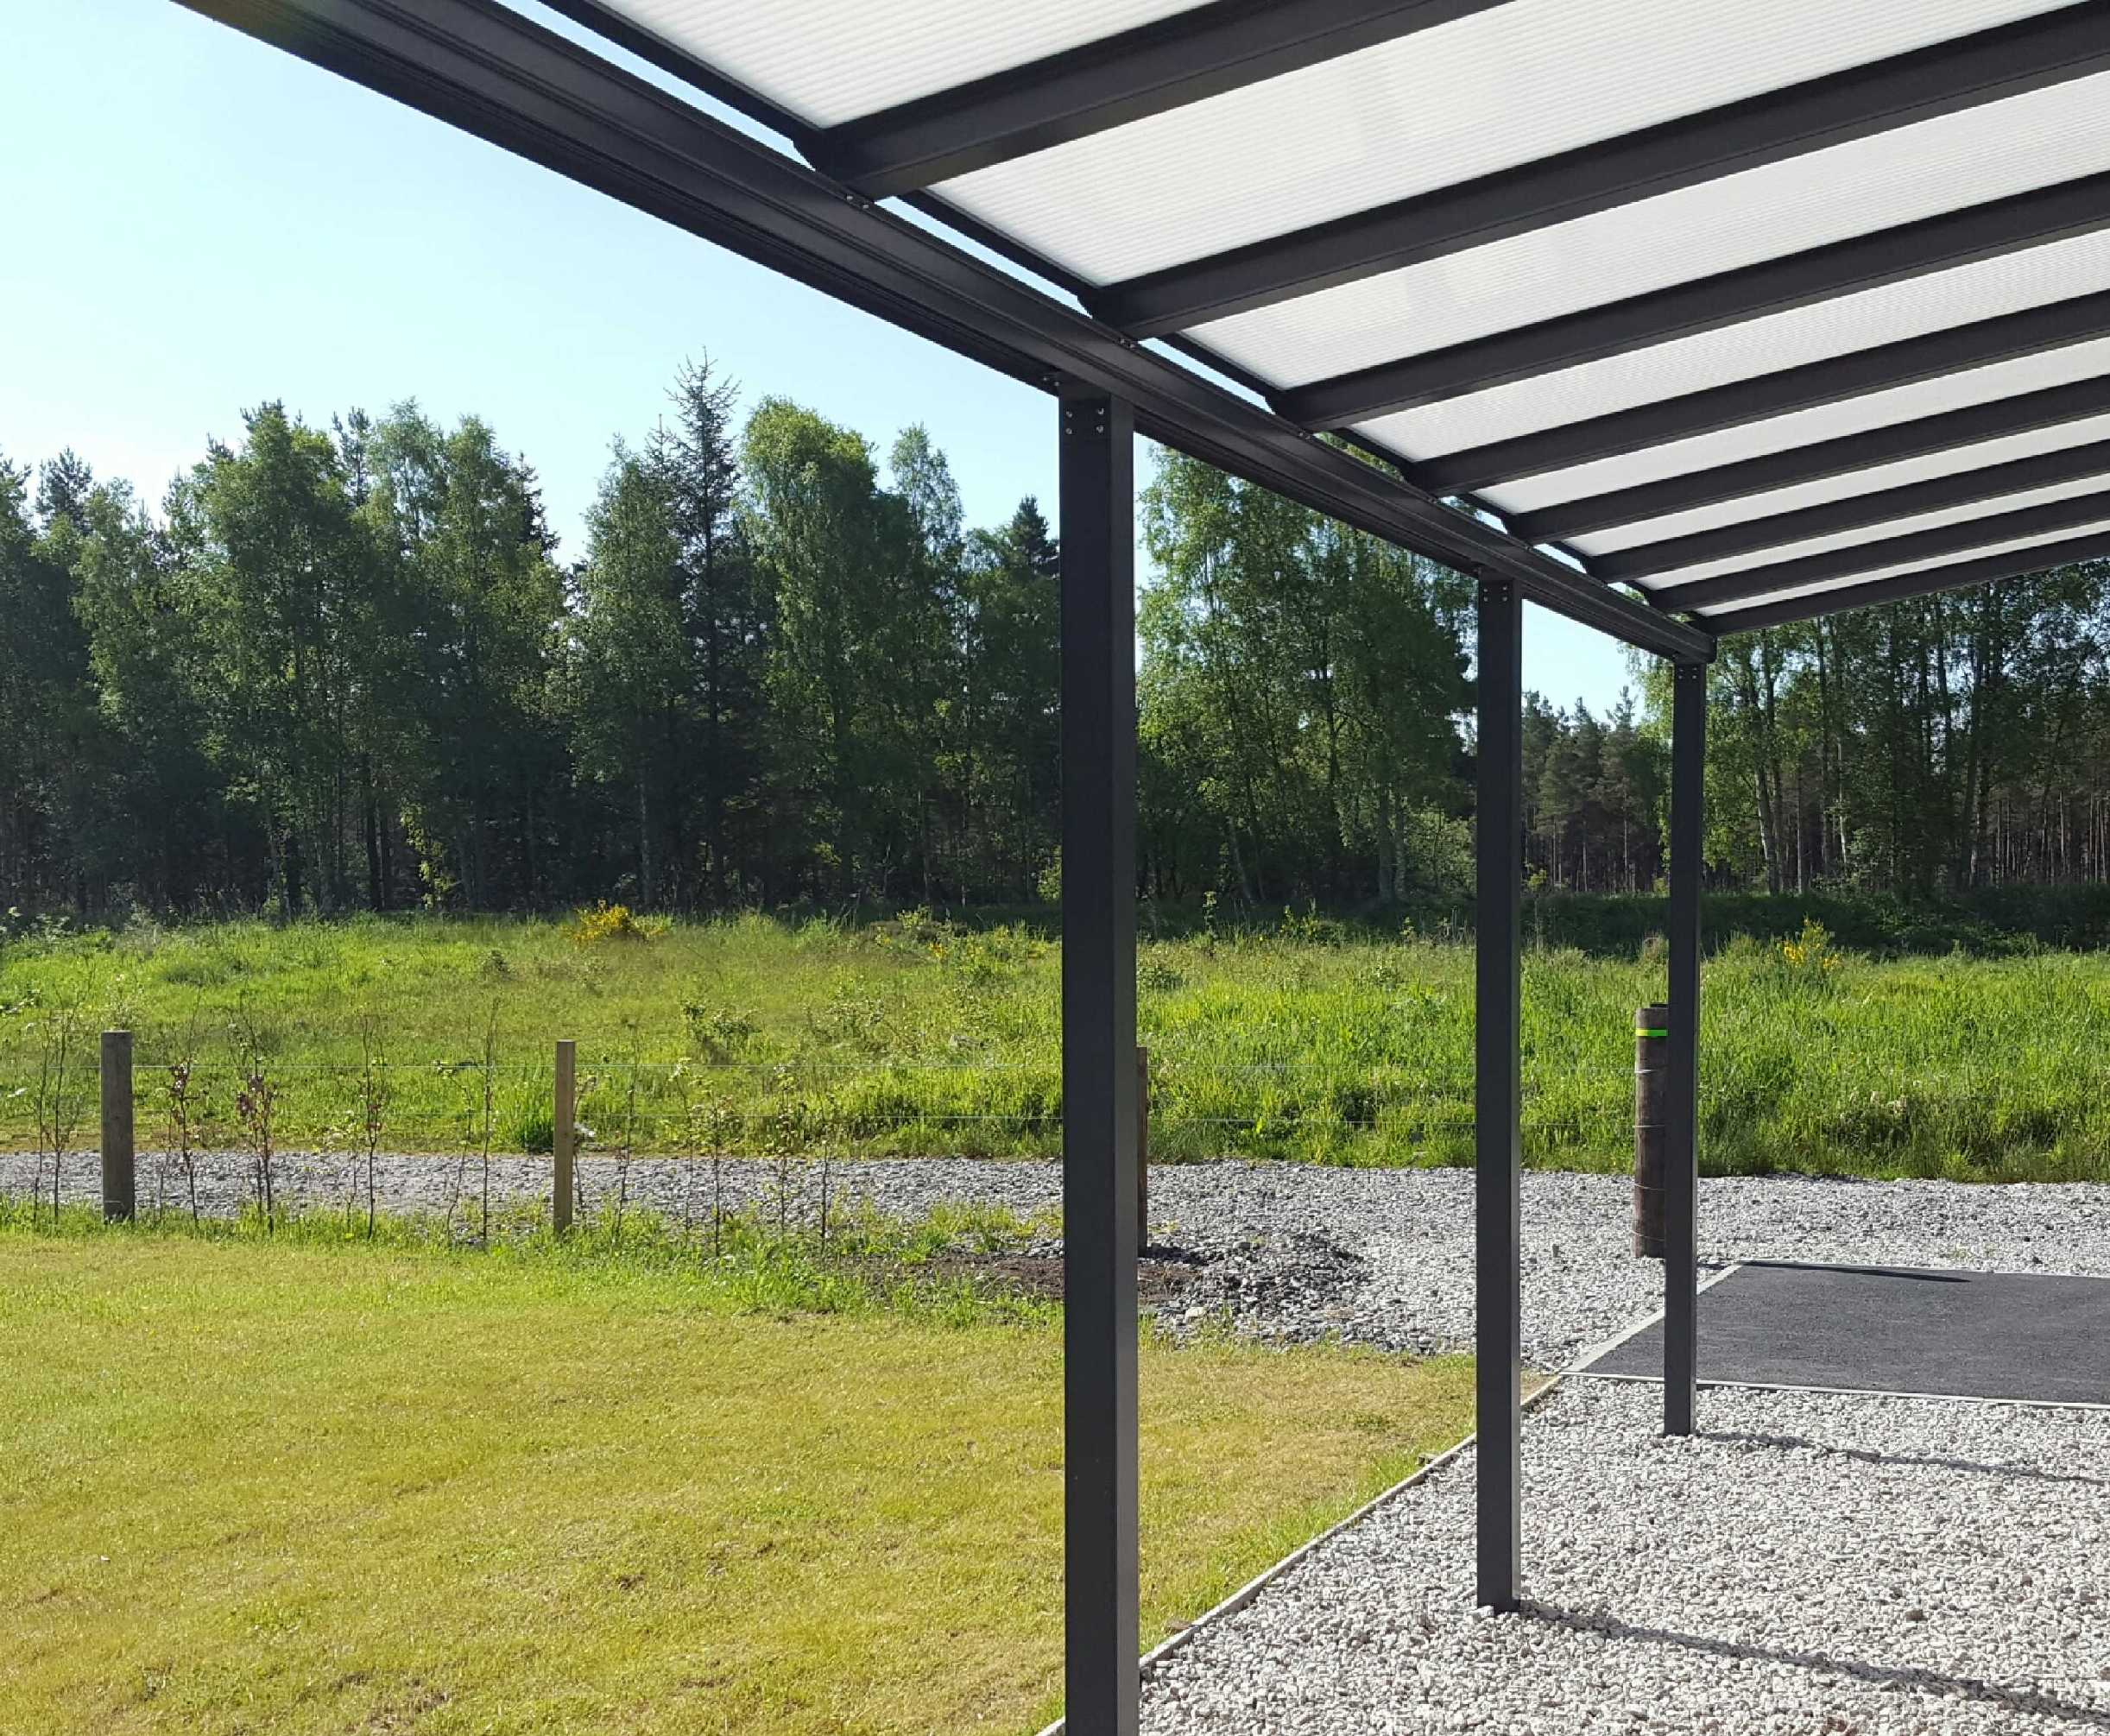 Omega Smart Lean-To Canopy, Anthracite Grey, UNGLAZED for 6mm Glazing - 9.8m (W) x 3.5m (P), (5) Supporting Posts